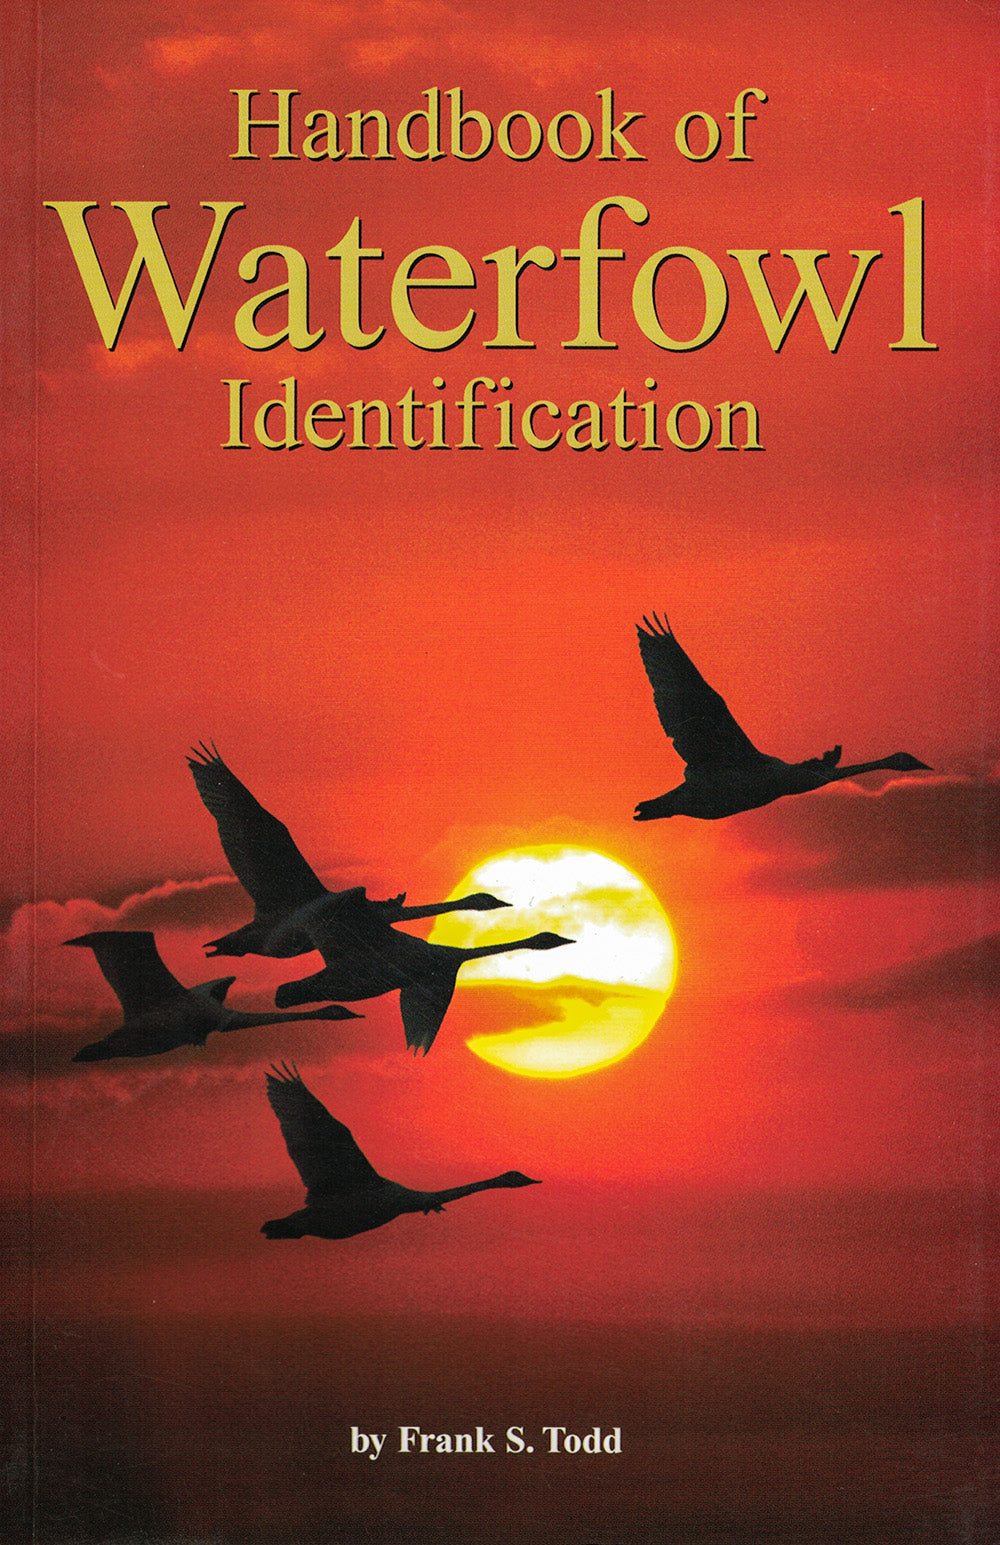 Handbook of Waterfowl Identification